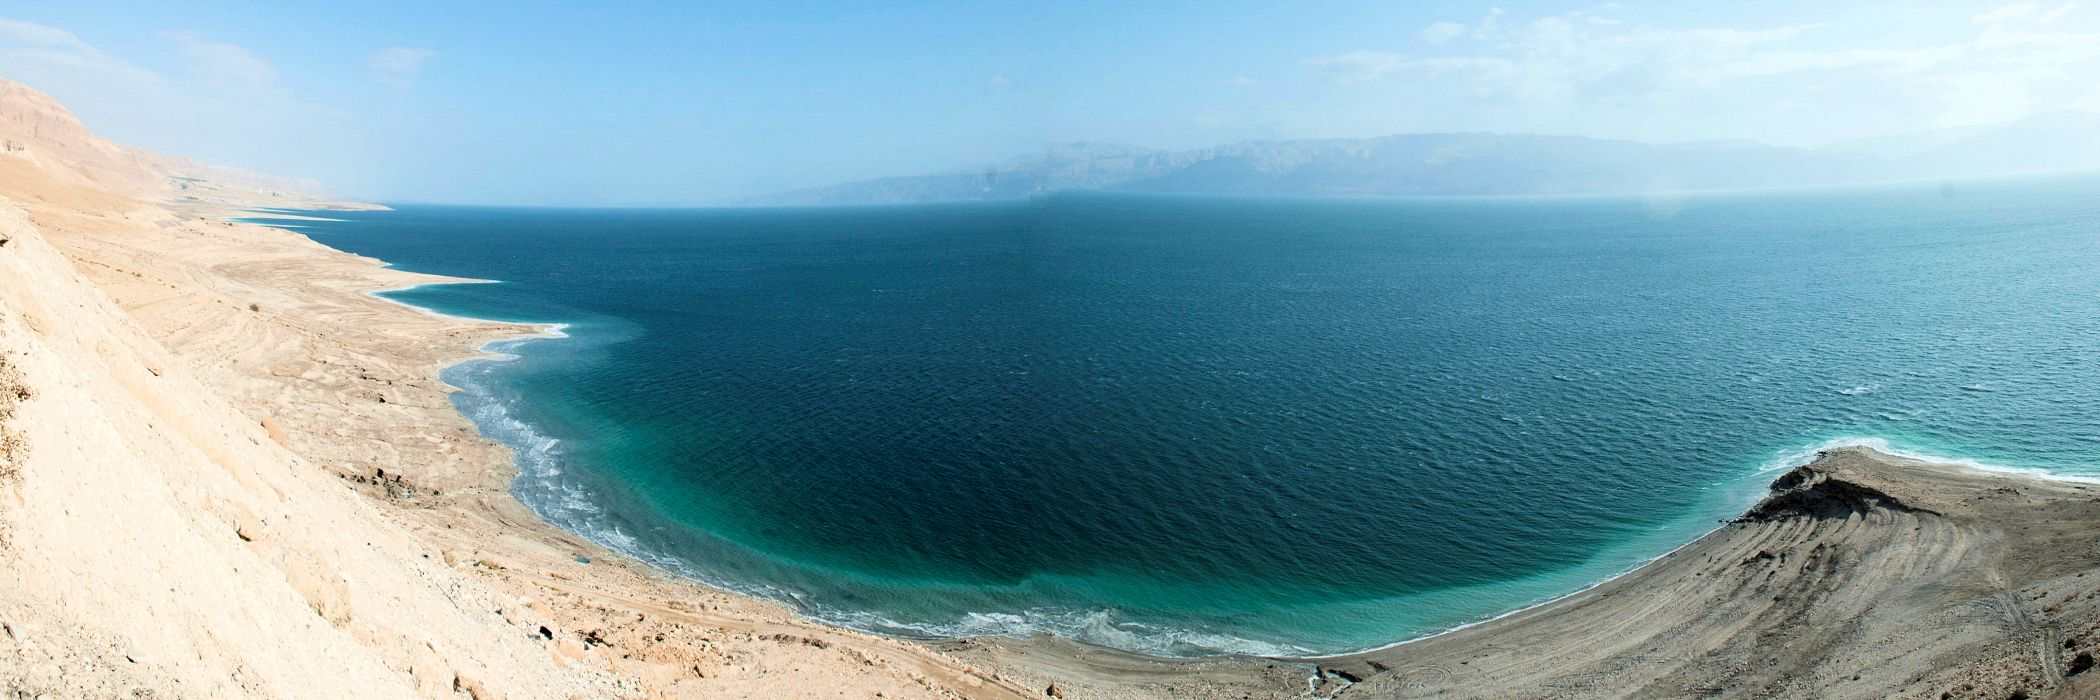 Dead Sea as seen from the Judean Desert